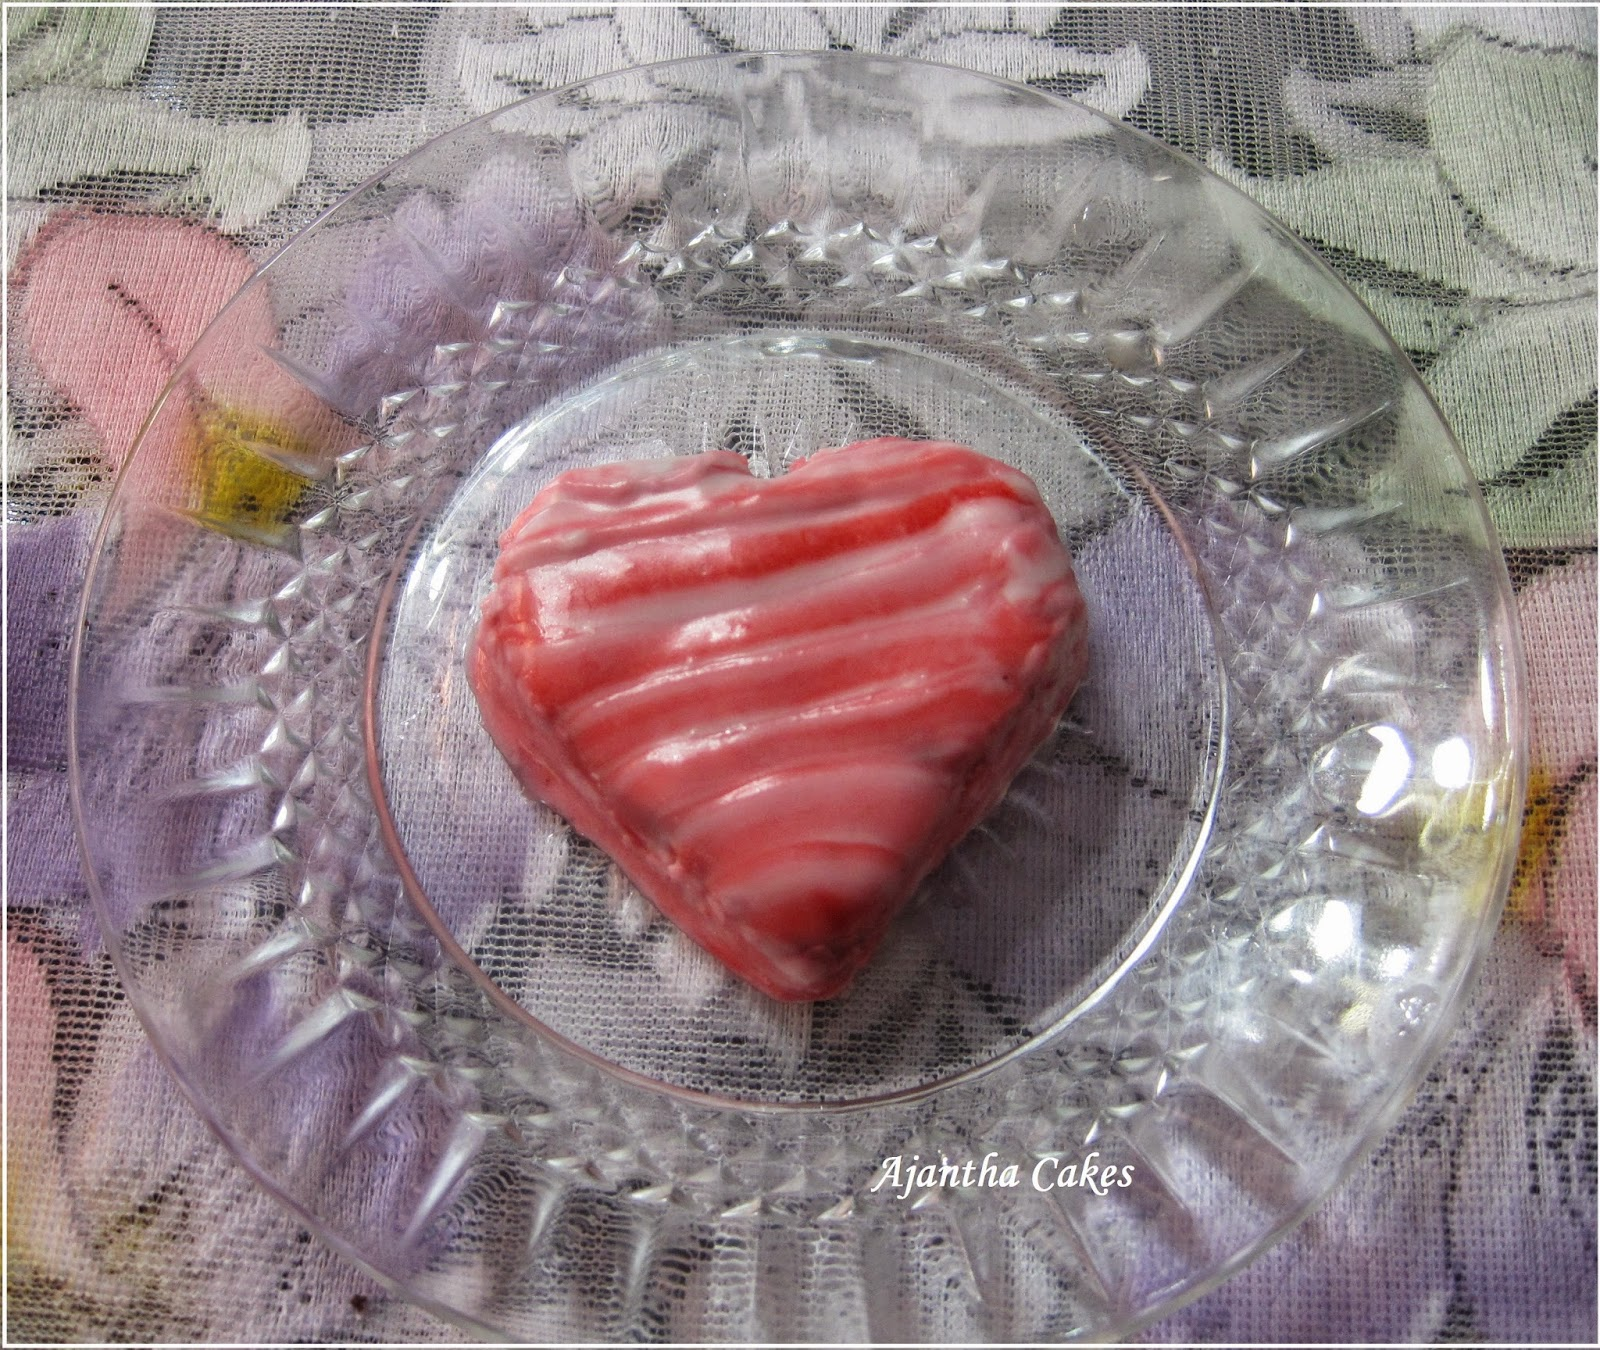 Ajantha Cakes/Heart shape cake with Royal Icing Heart Lattice